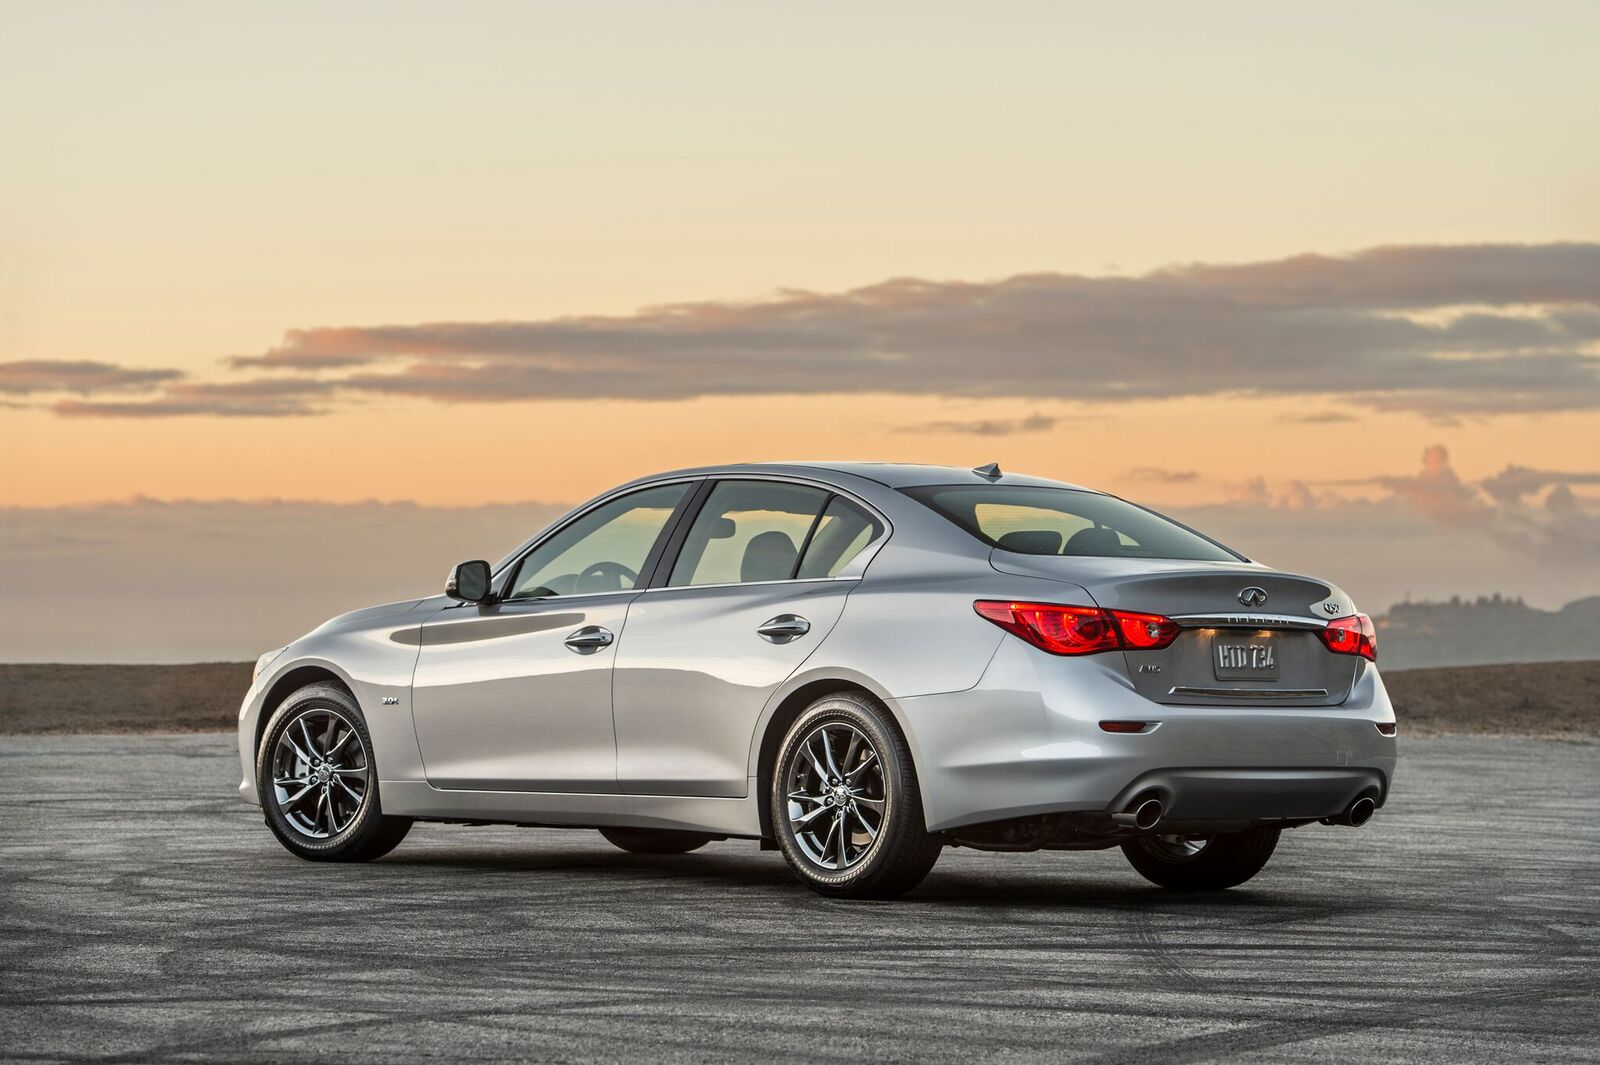 Infinity Sign Wallpaper Hd 2017 Infiniti Q50 3 0t Signature Edition Is A Fancy